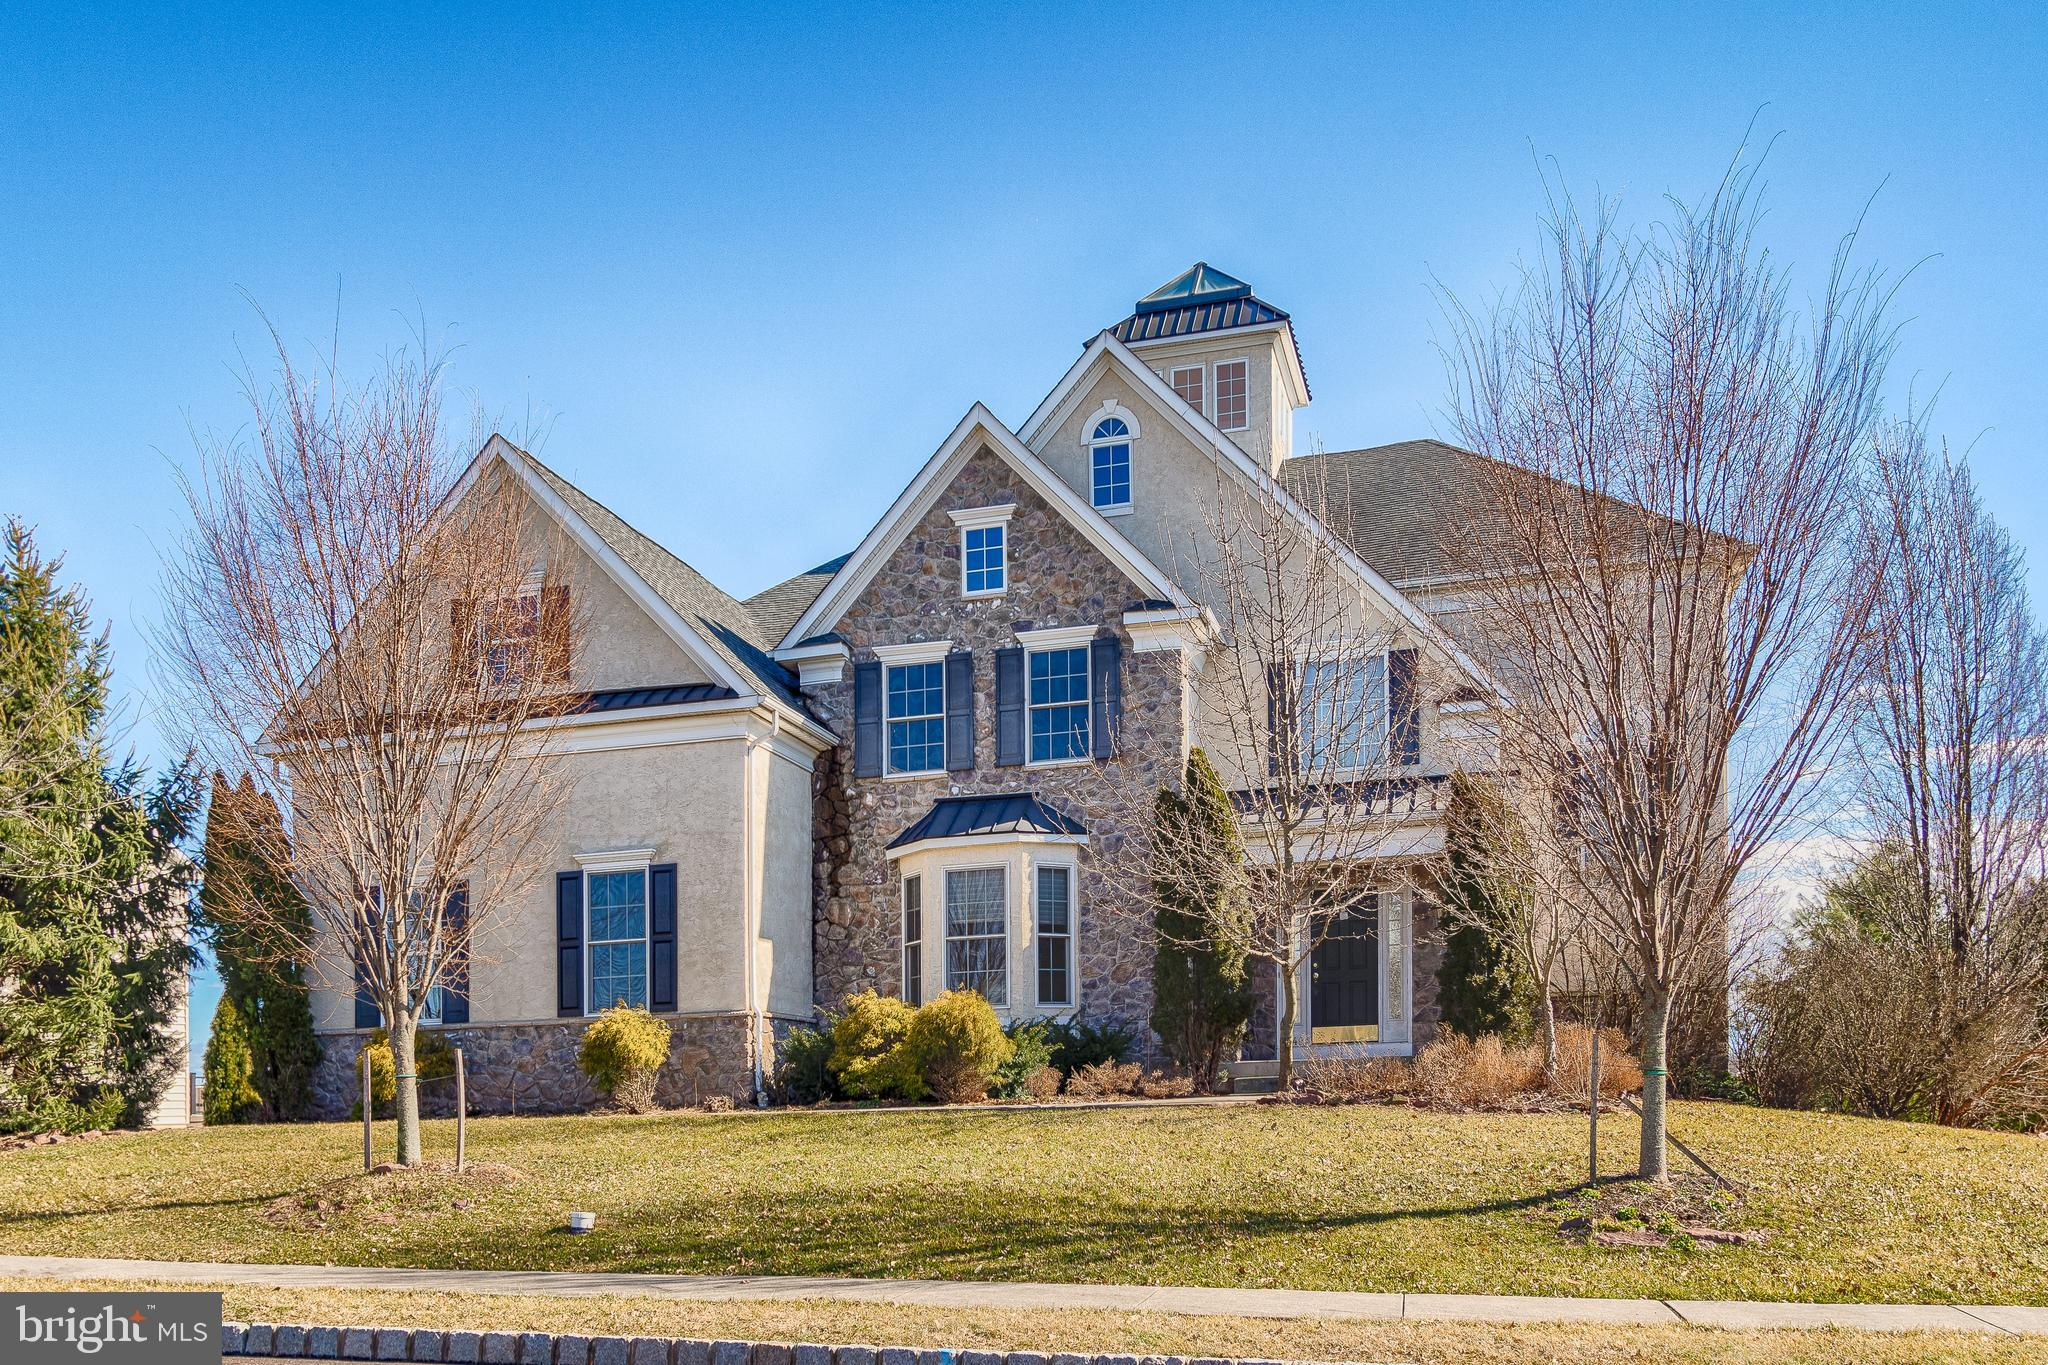 840 CLUBHOUSE DRIVE, HARLEYSVILLE, PA 19438